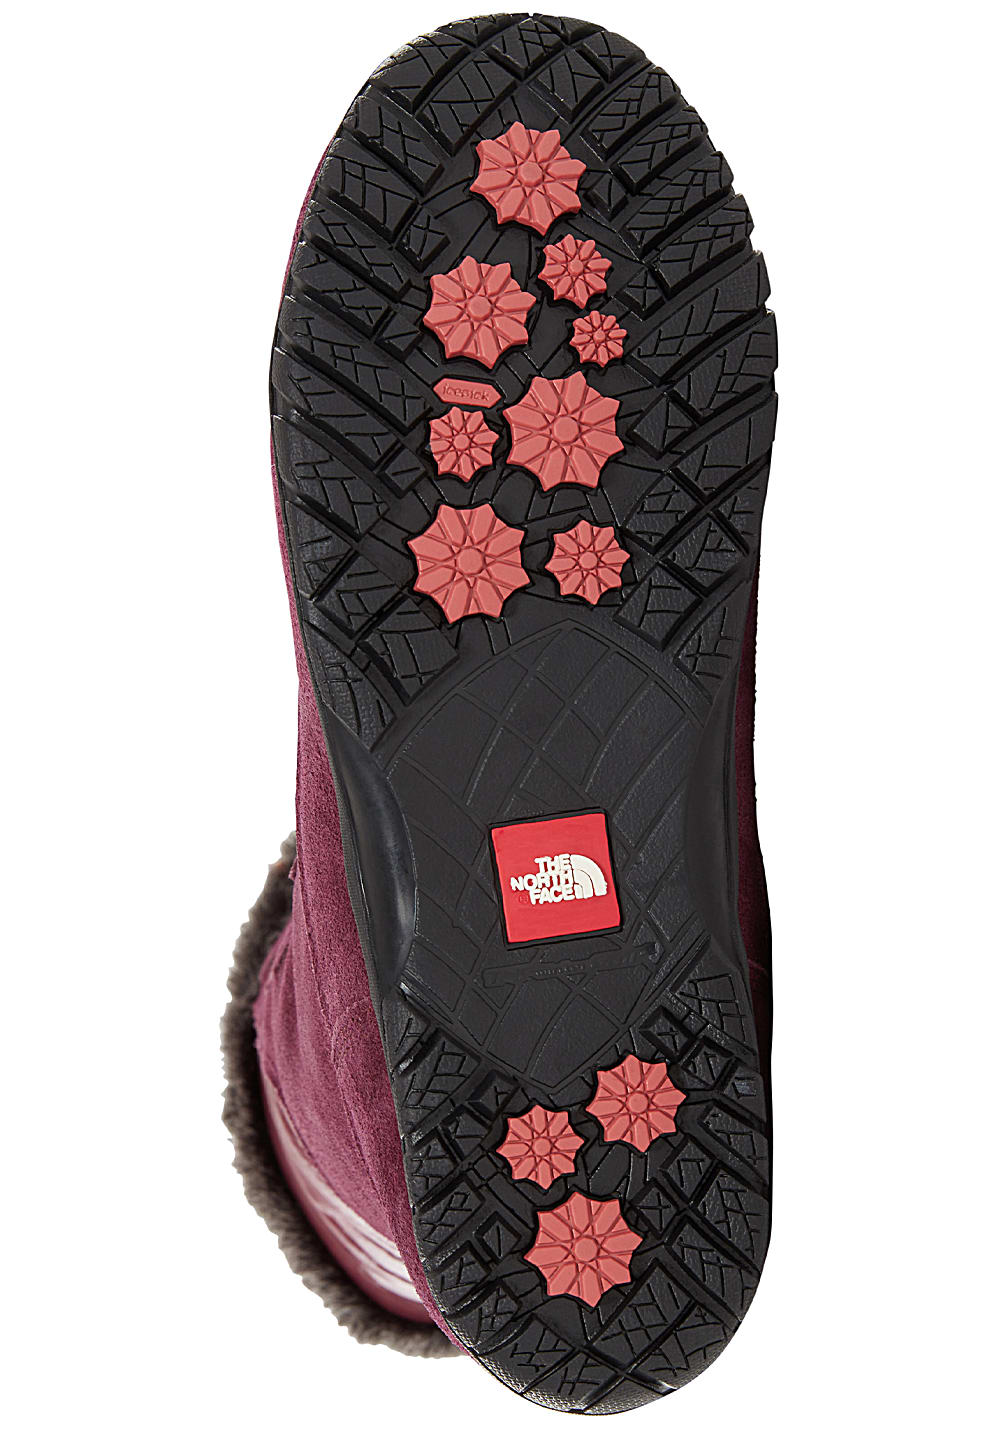 8da9829d0 THE NORTH FACE Nuptse Purna II - Boots for Women - Red